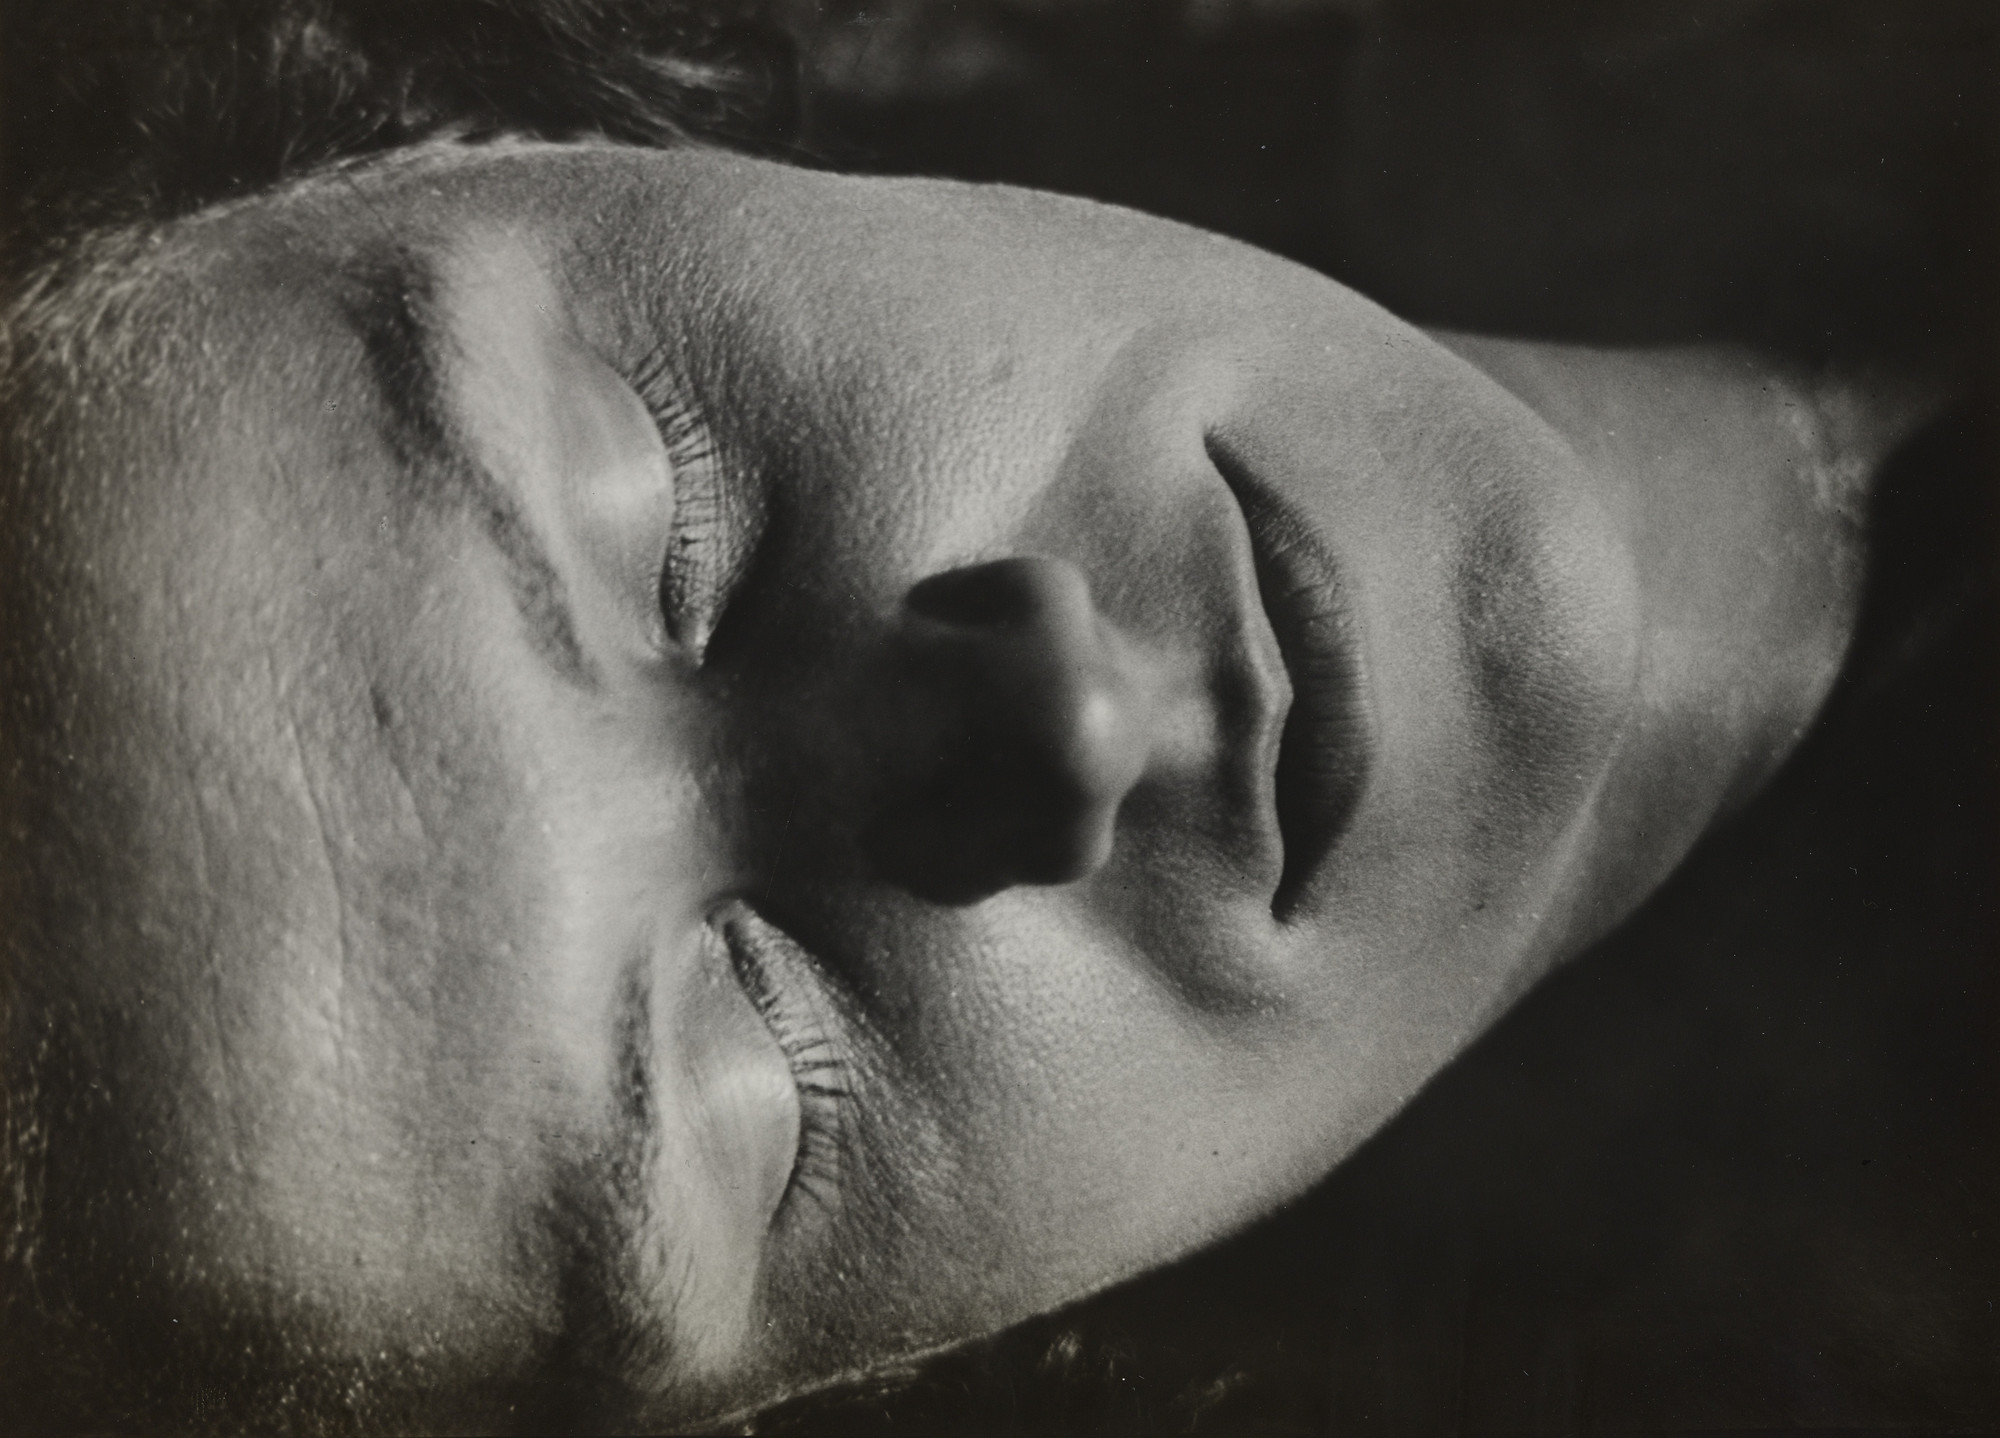 Raoul Hausmann. Untitled. 1931